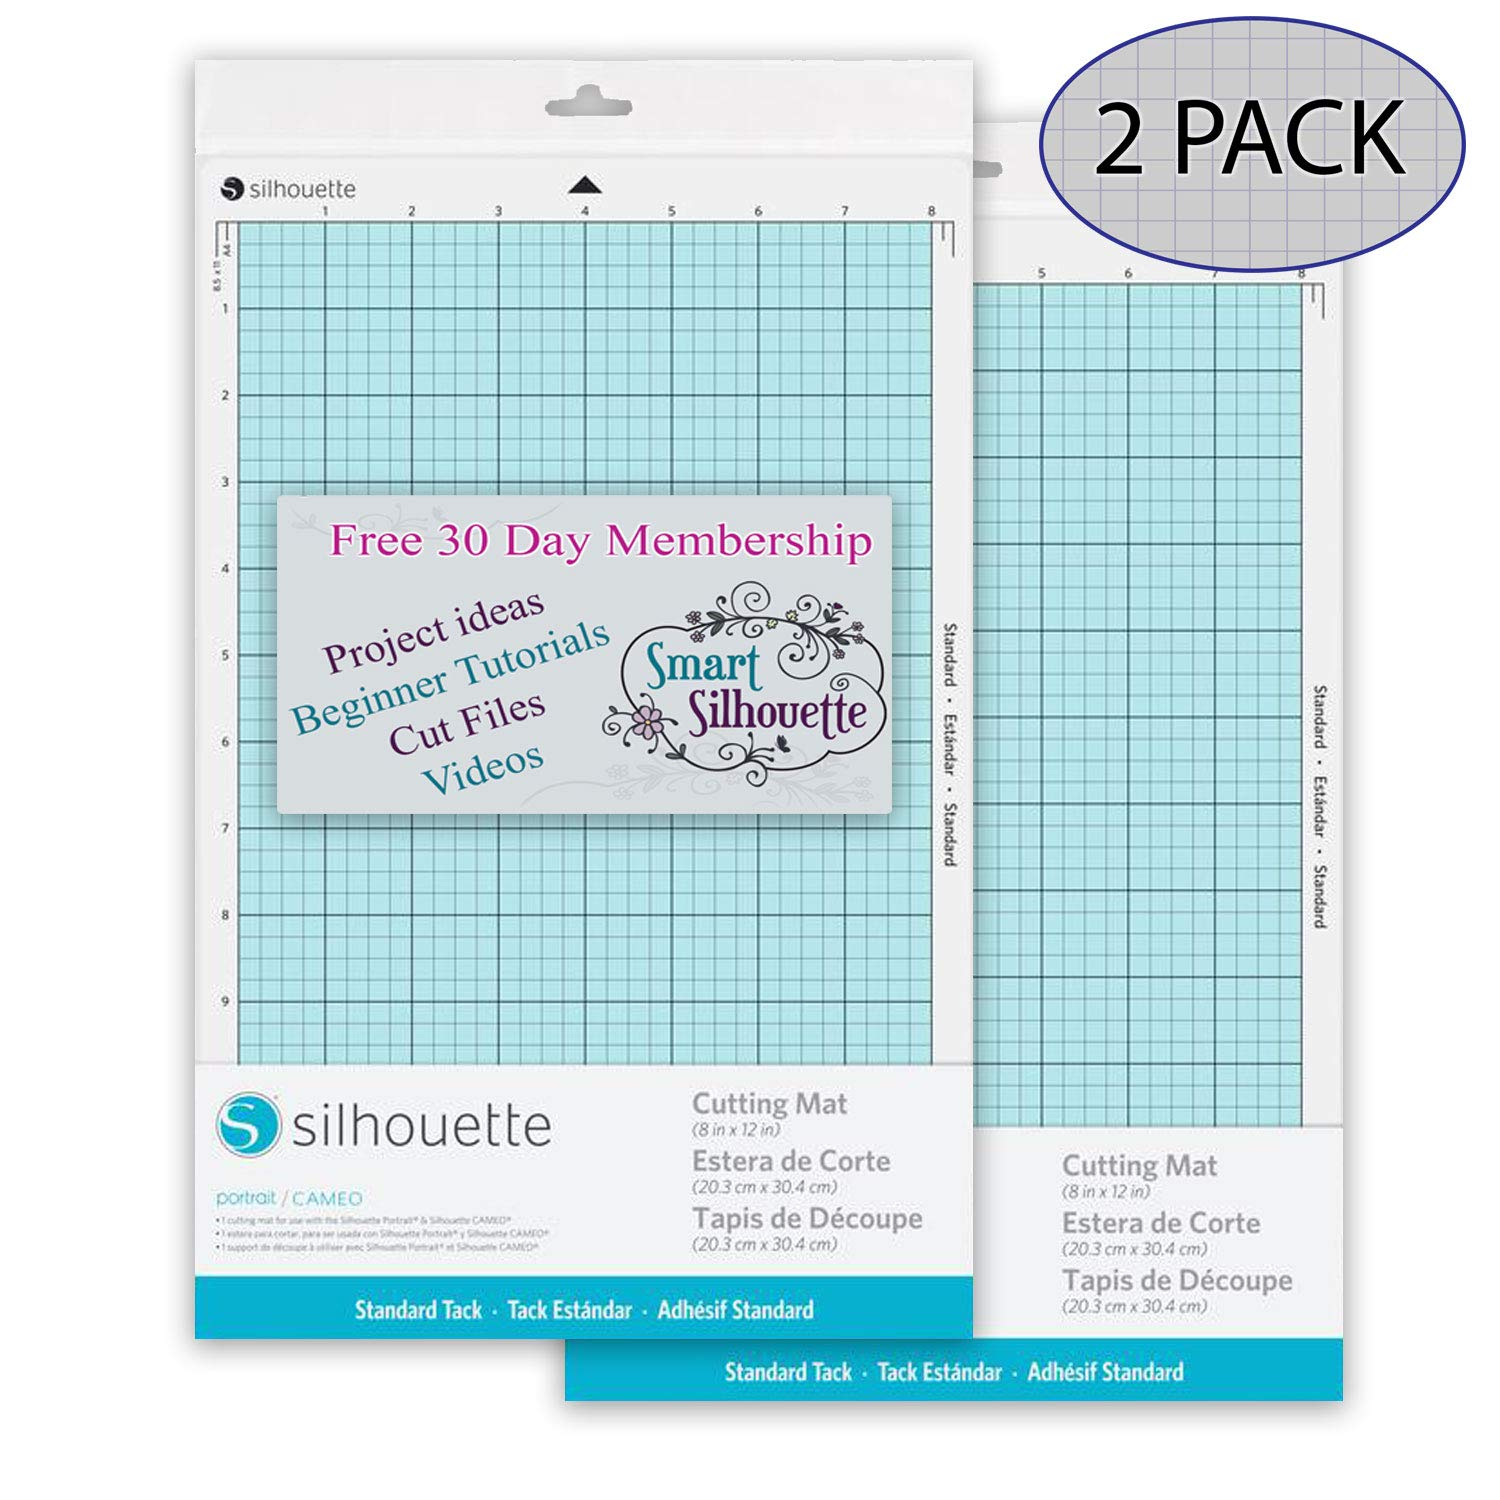 Silhouette America CUT-MAT-8-3T 2 Pack Portrait 2 Cutting Mat, with 30 Day Smart Silhouette Membership (1)